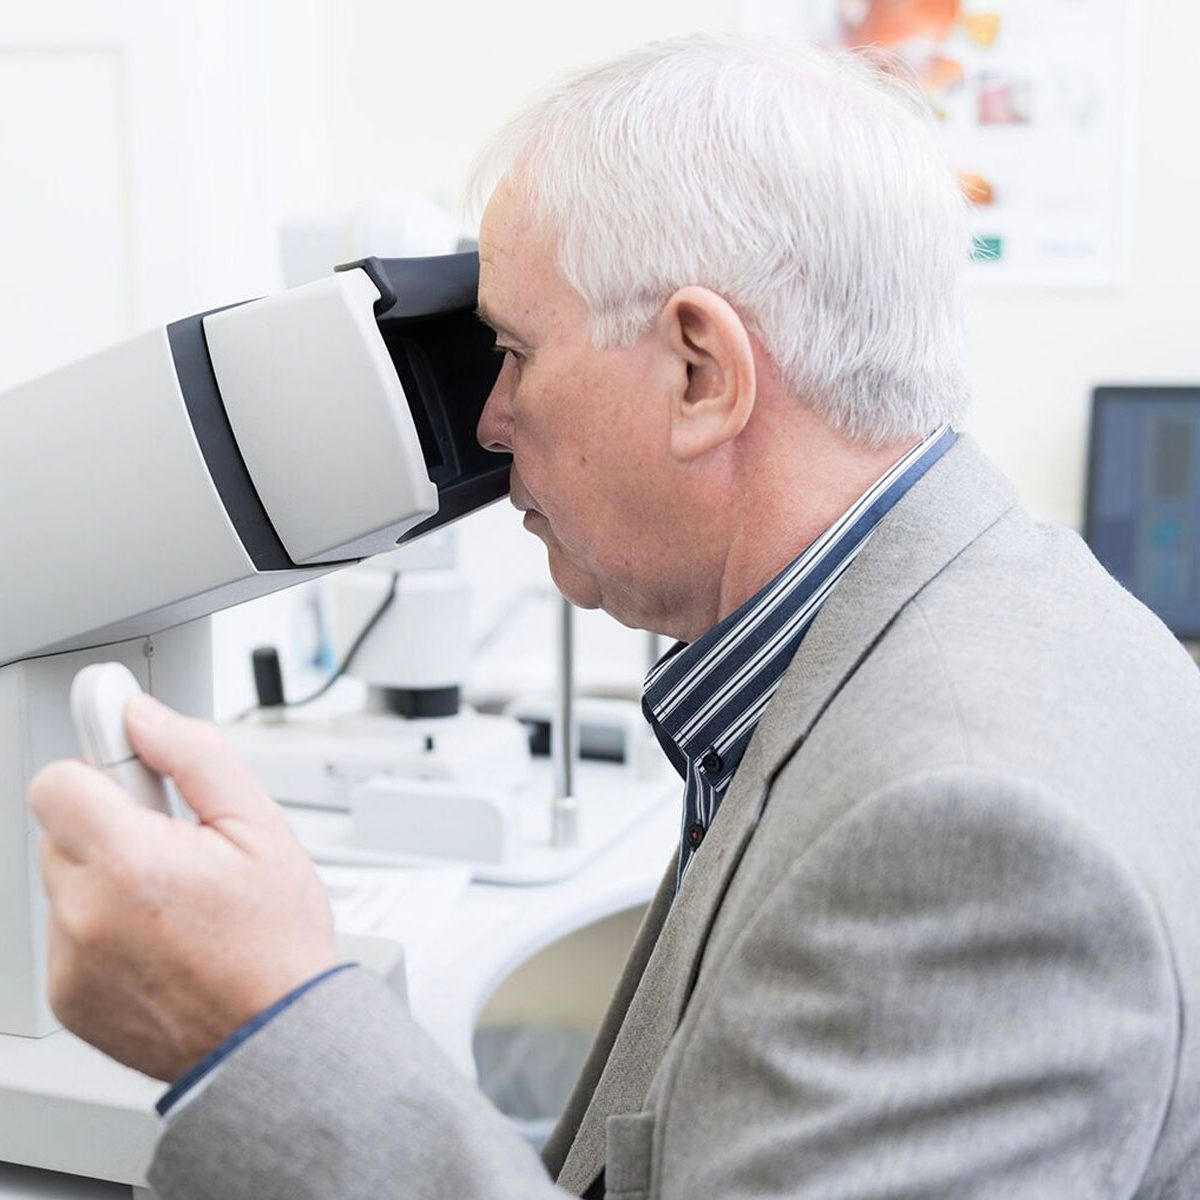 How to ensure glaucoma is detected early